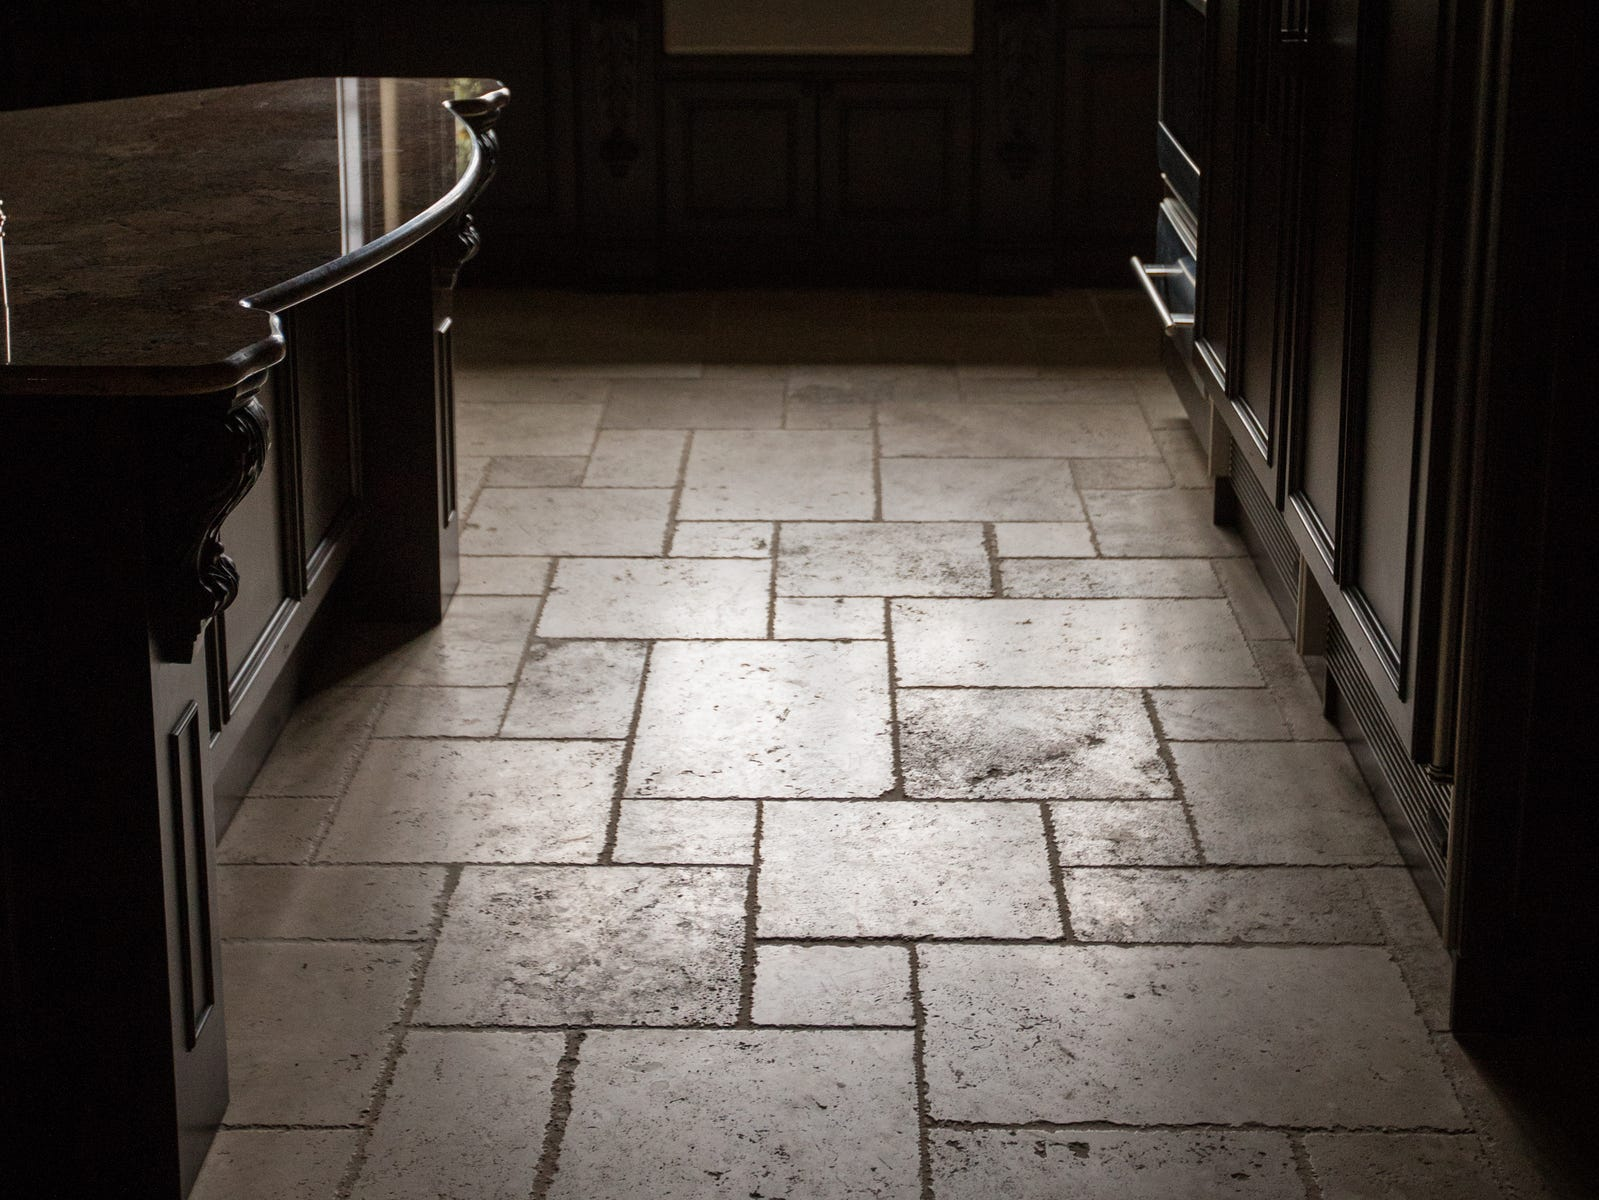 Natural limestone tile imported from Italy is seen in the kitchen.